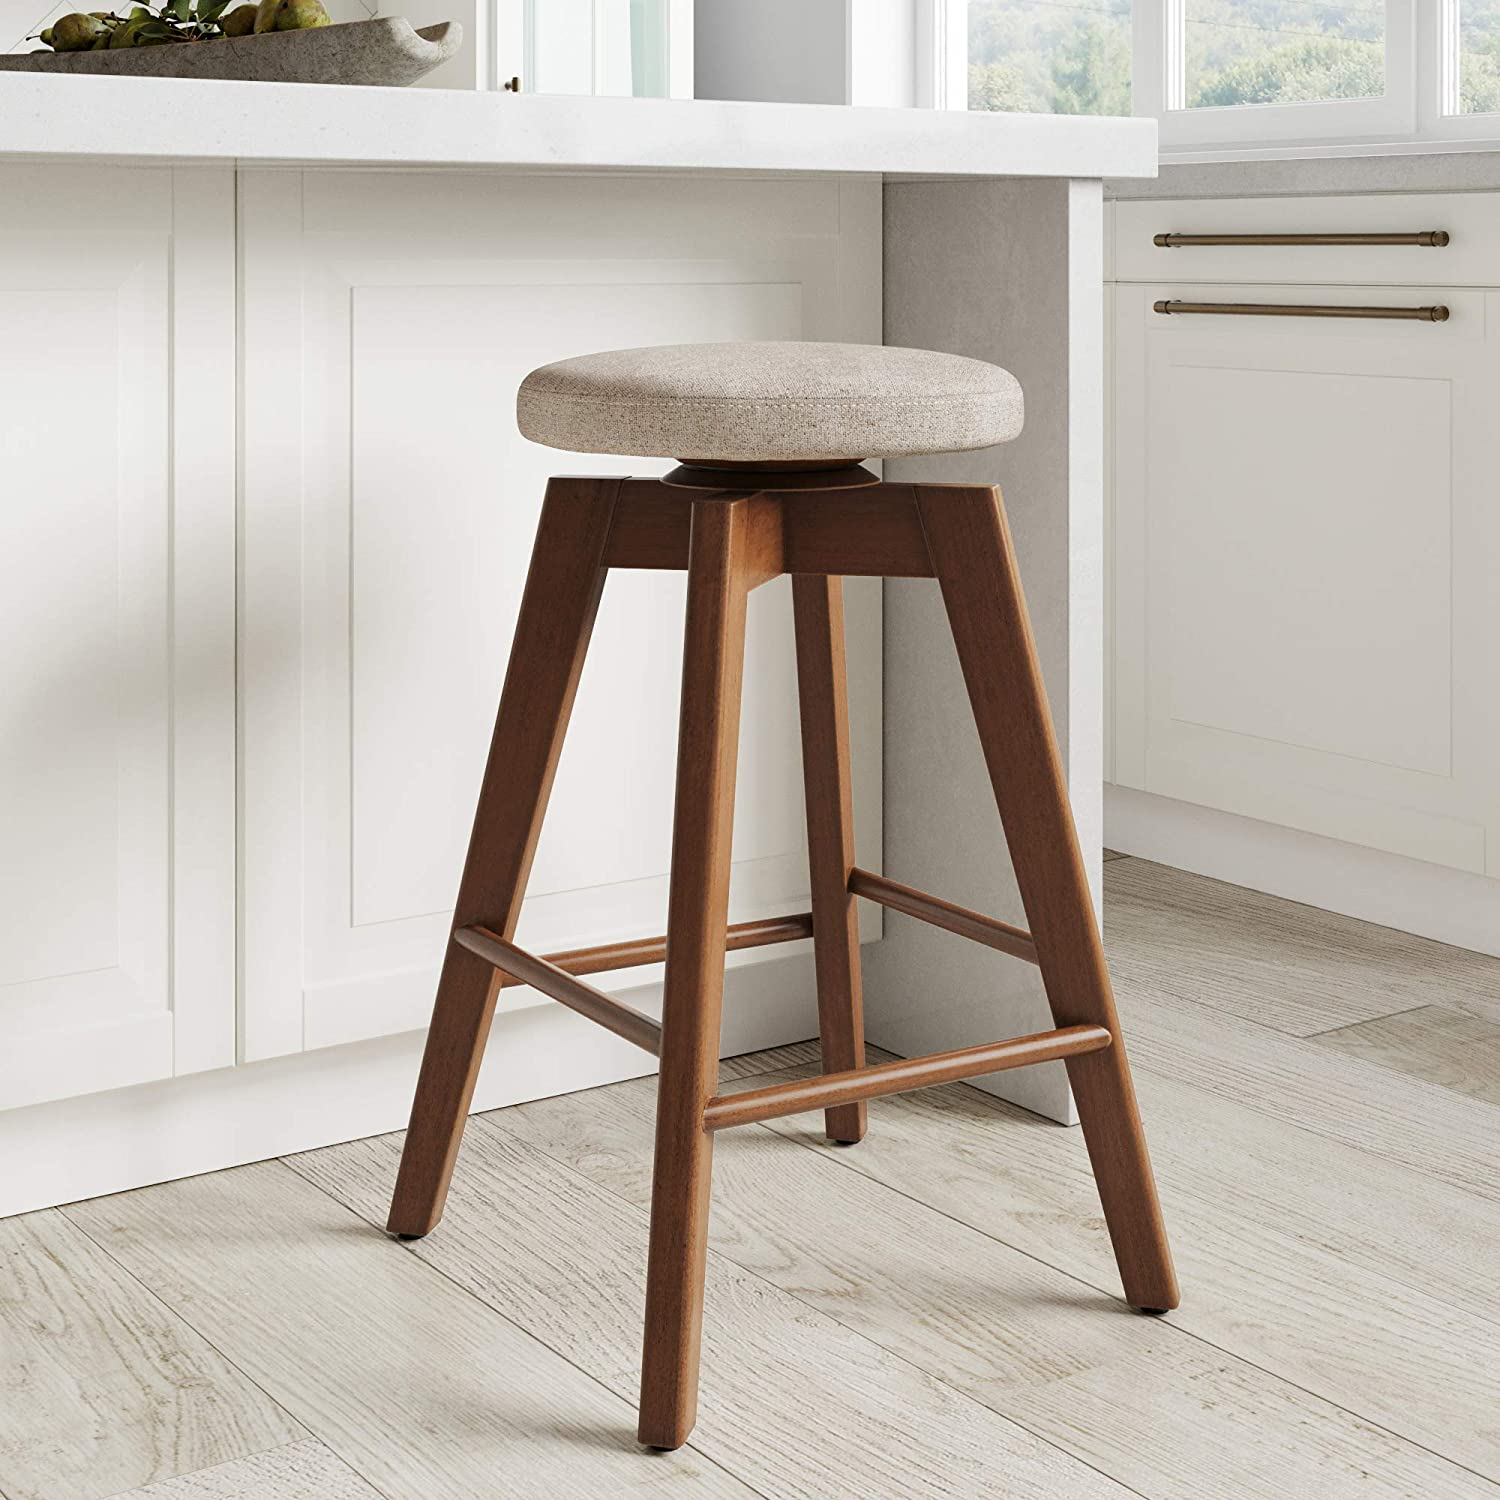 Best 360 swivel backless bar stool